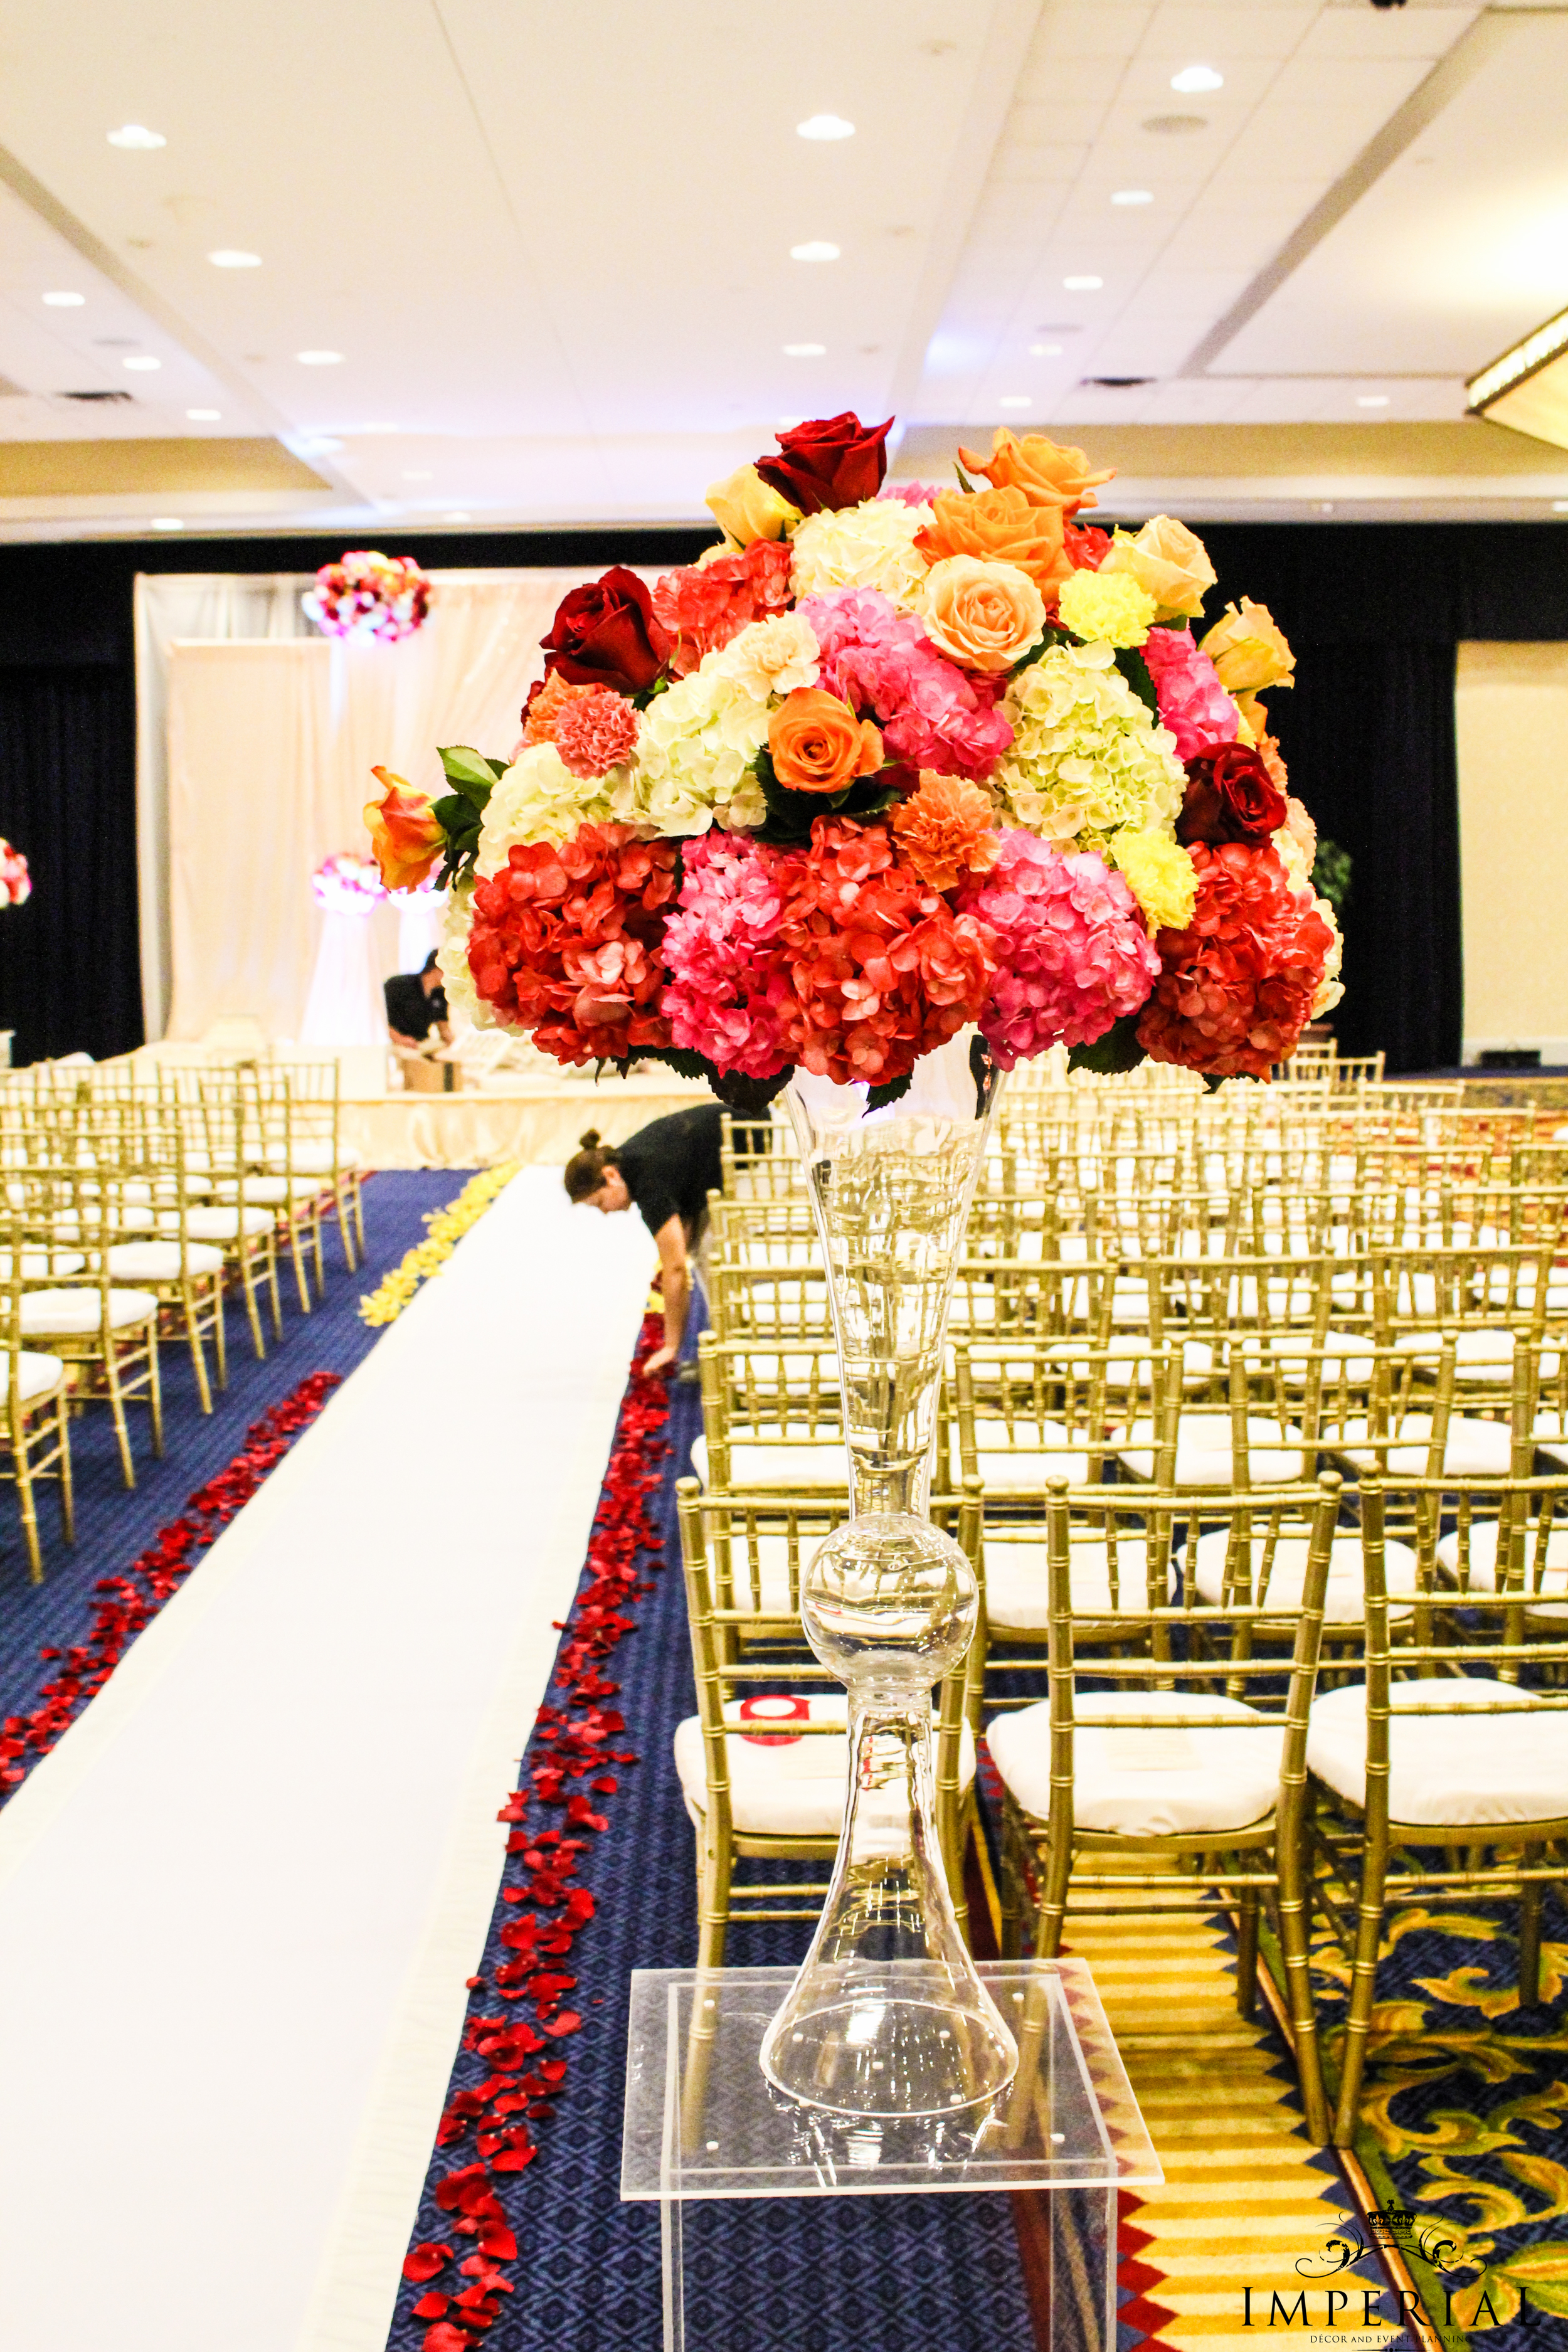 Imperial Decorations - Indian Wedding Floral Hall Decoration.jpg